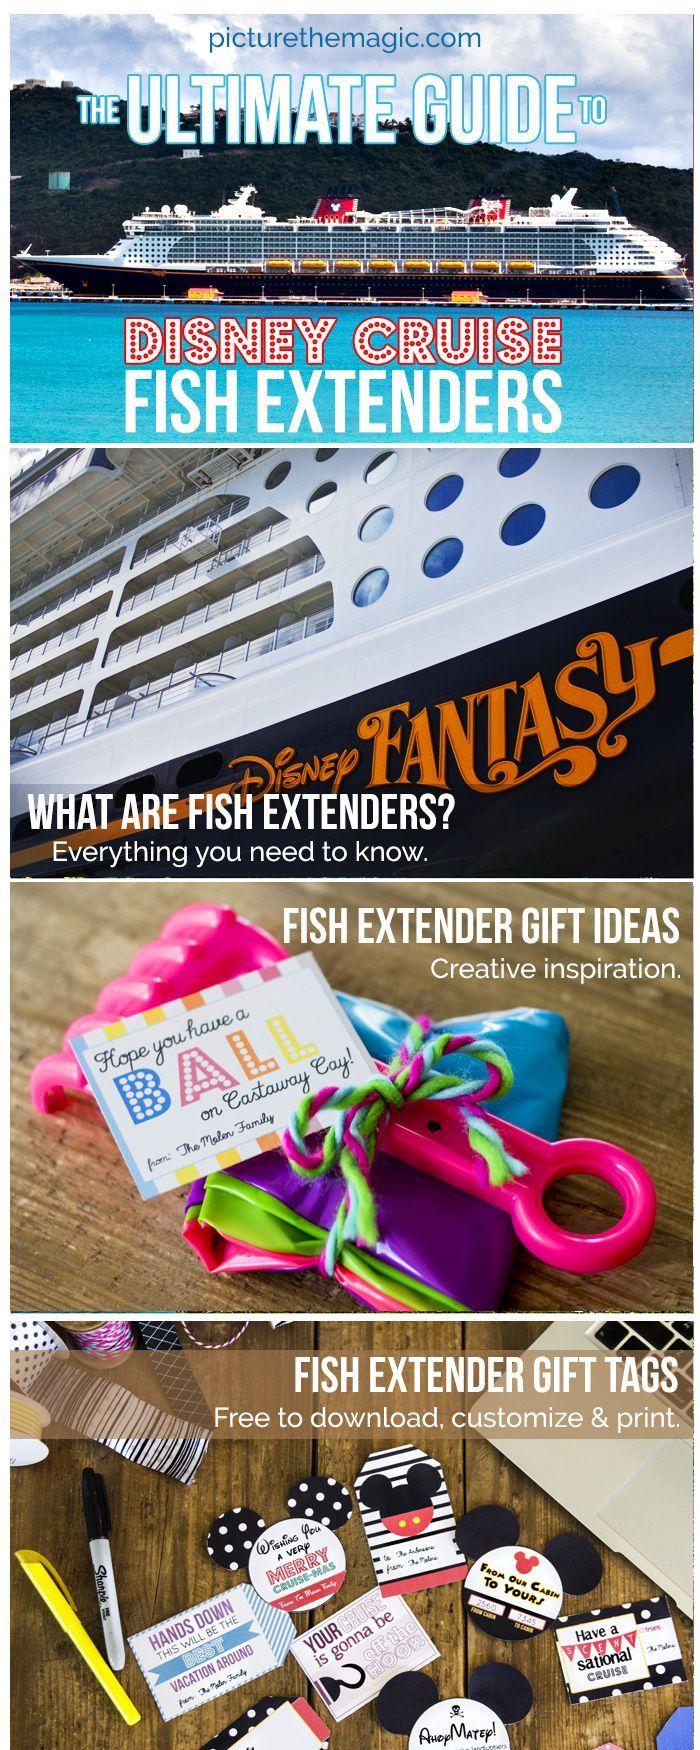 More than 100 Fish Extender Gift Ideas! Free fish extenders templates and tutorials. Download free gift tags. Gift suggestions for men, women, boys, girls.